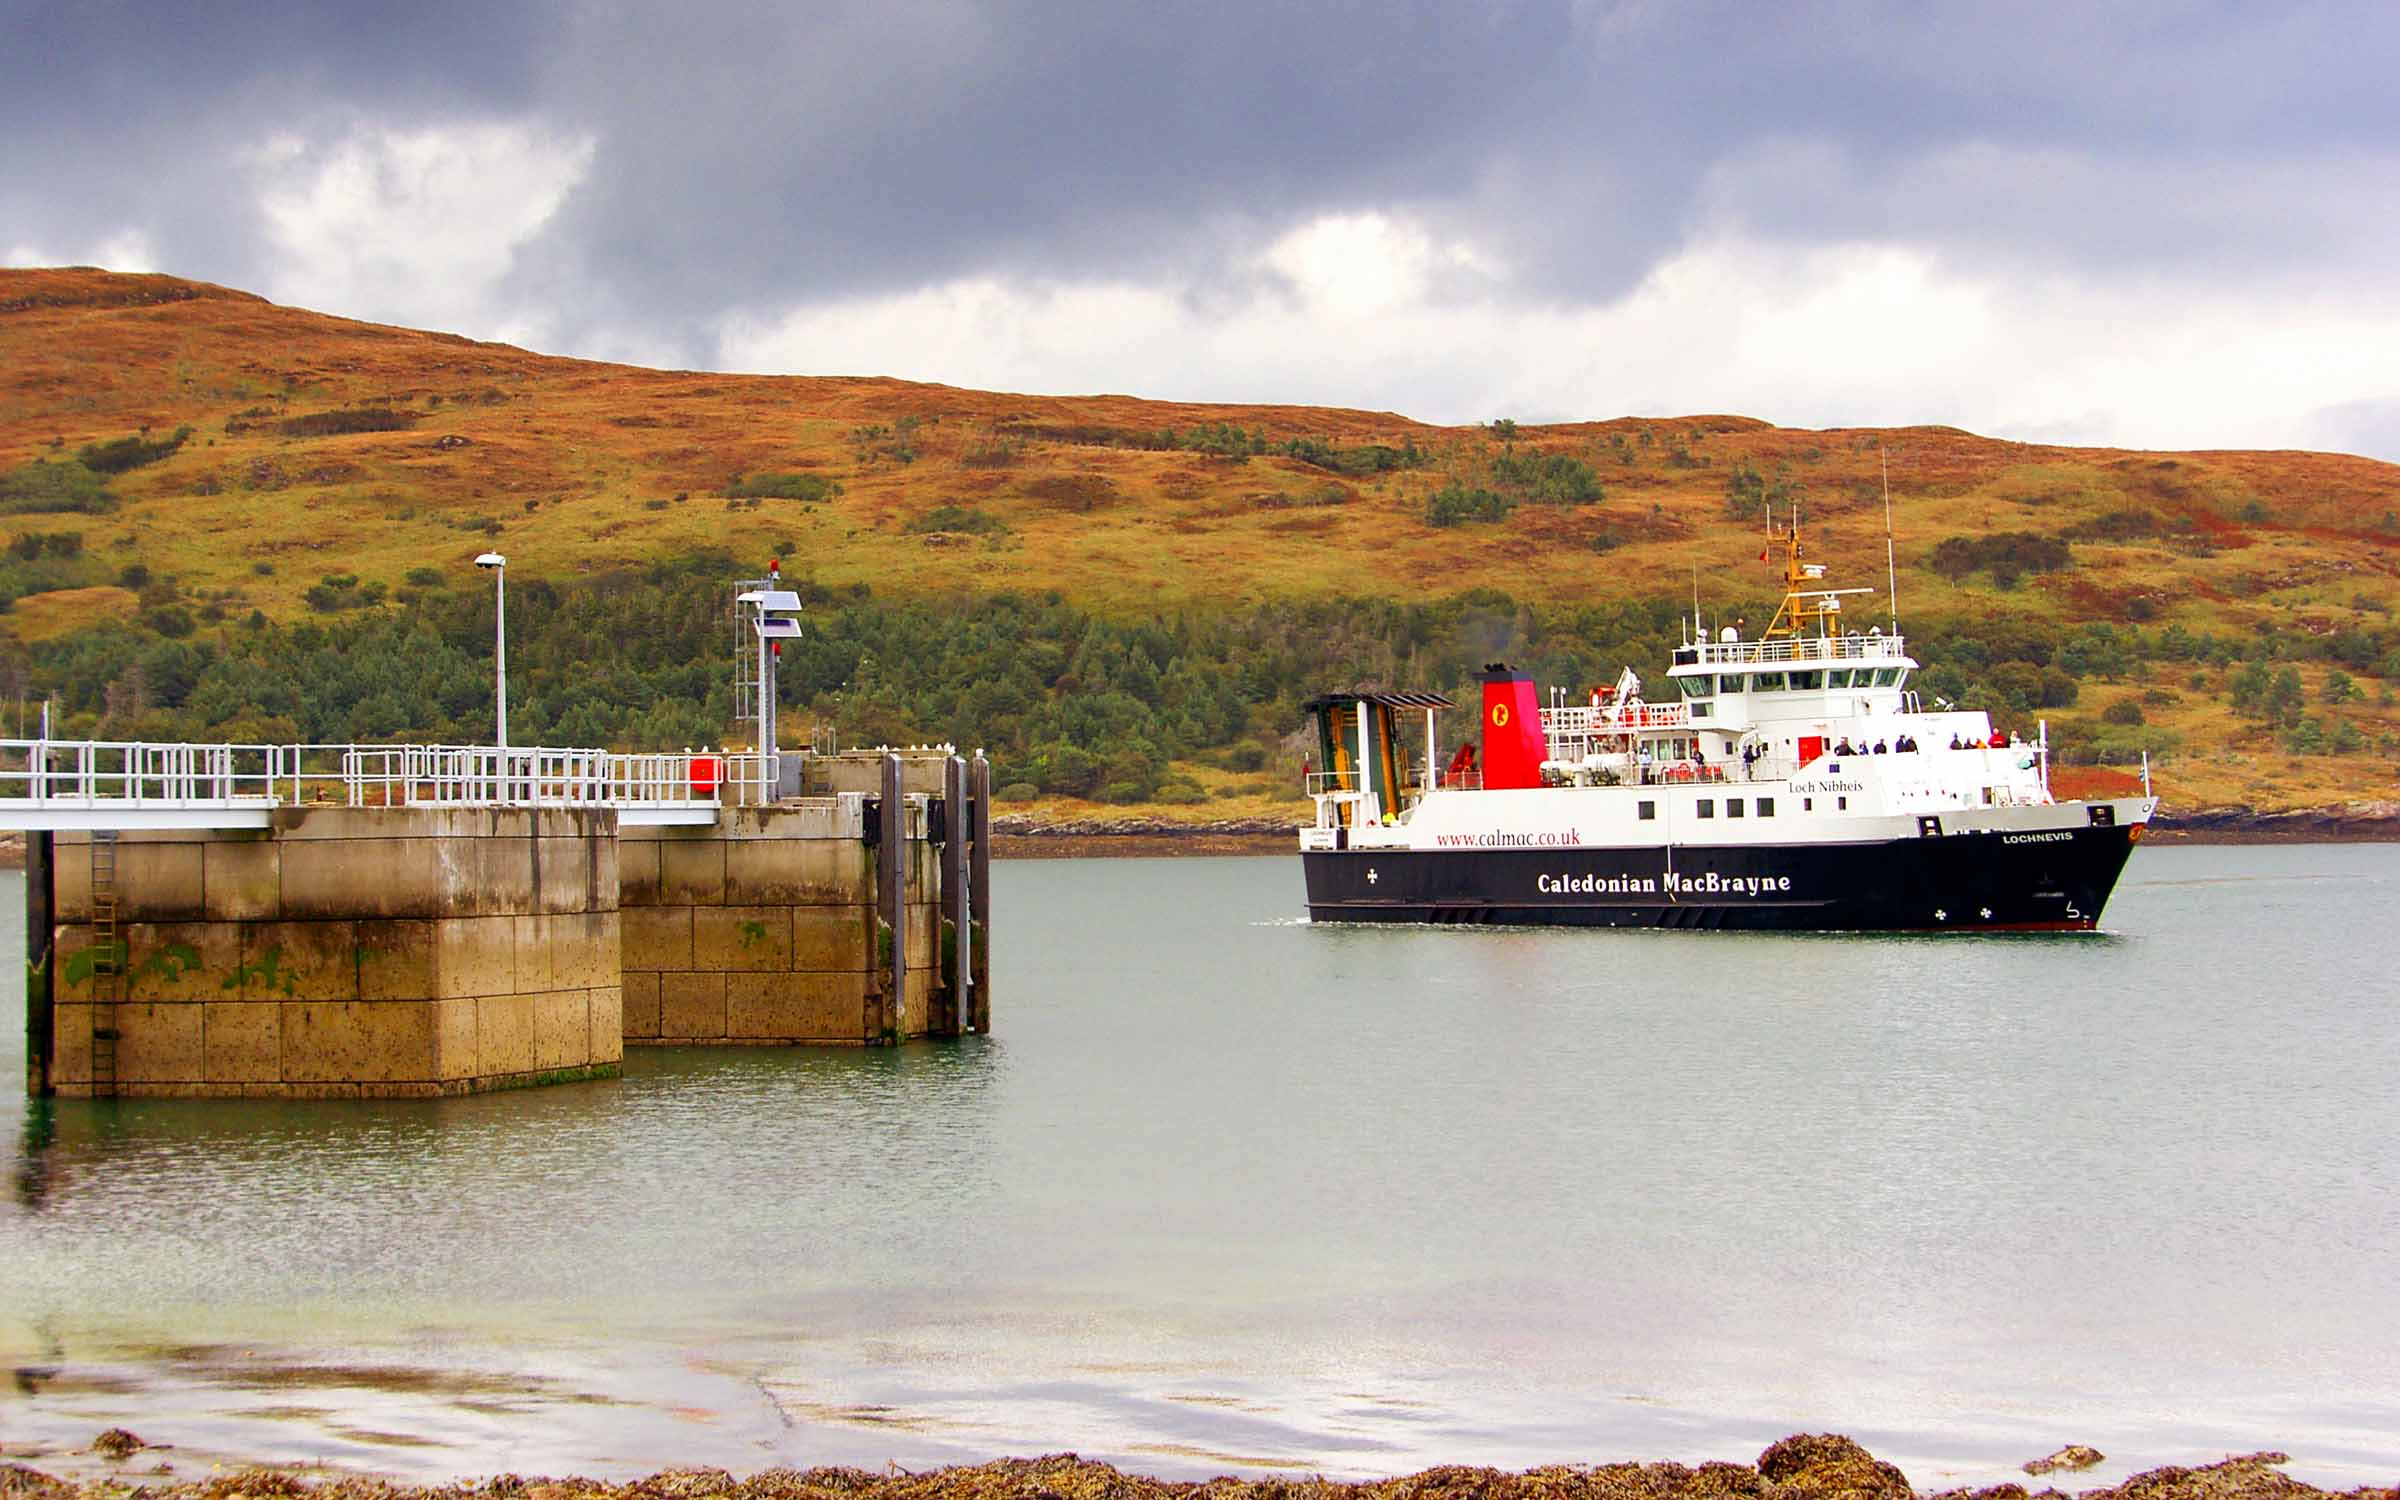 Lochnevis arriving at Rum (Ships of CalMac)